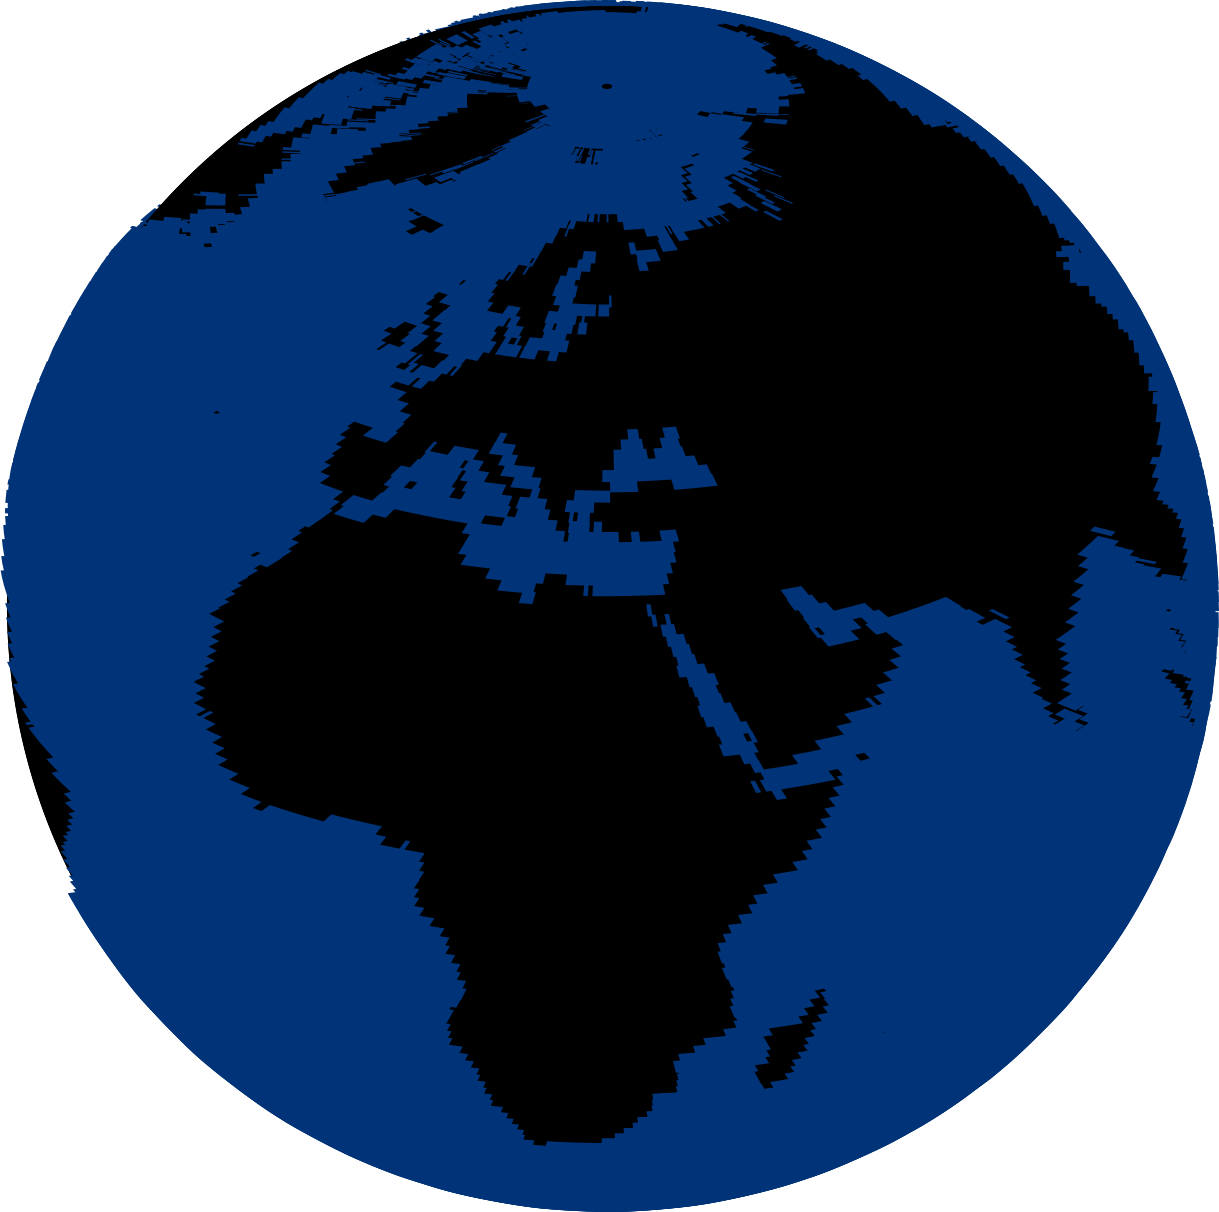 Earth clipart animated. Big image png